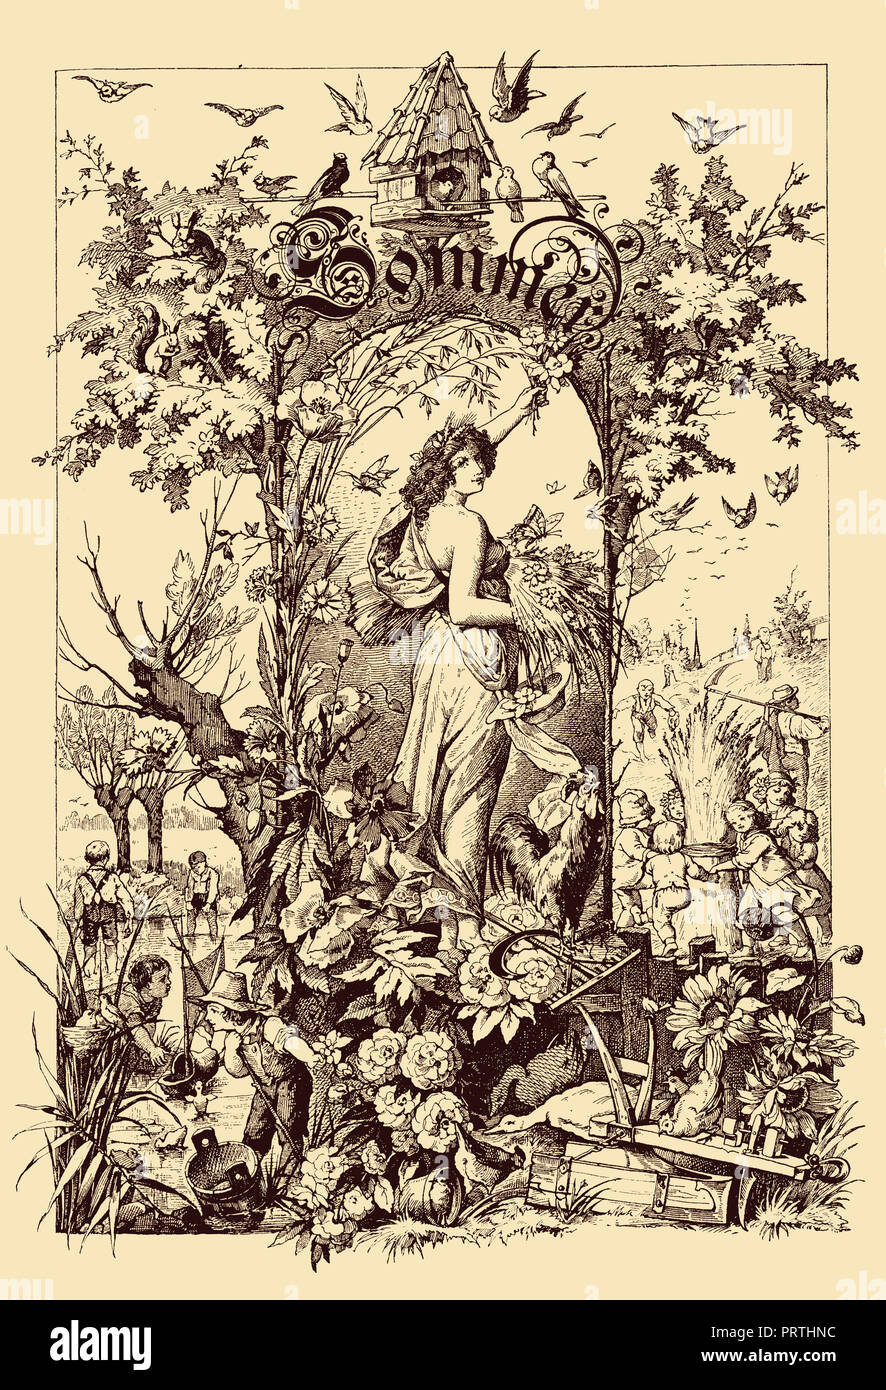 Beautiful vintage frontispiece chapter decoration dedicated to the summer season with Sommer written in old German characters, then kids playing in the fields, a goddess,flowers and birds - Stock Image